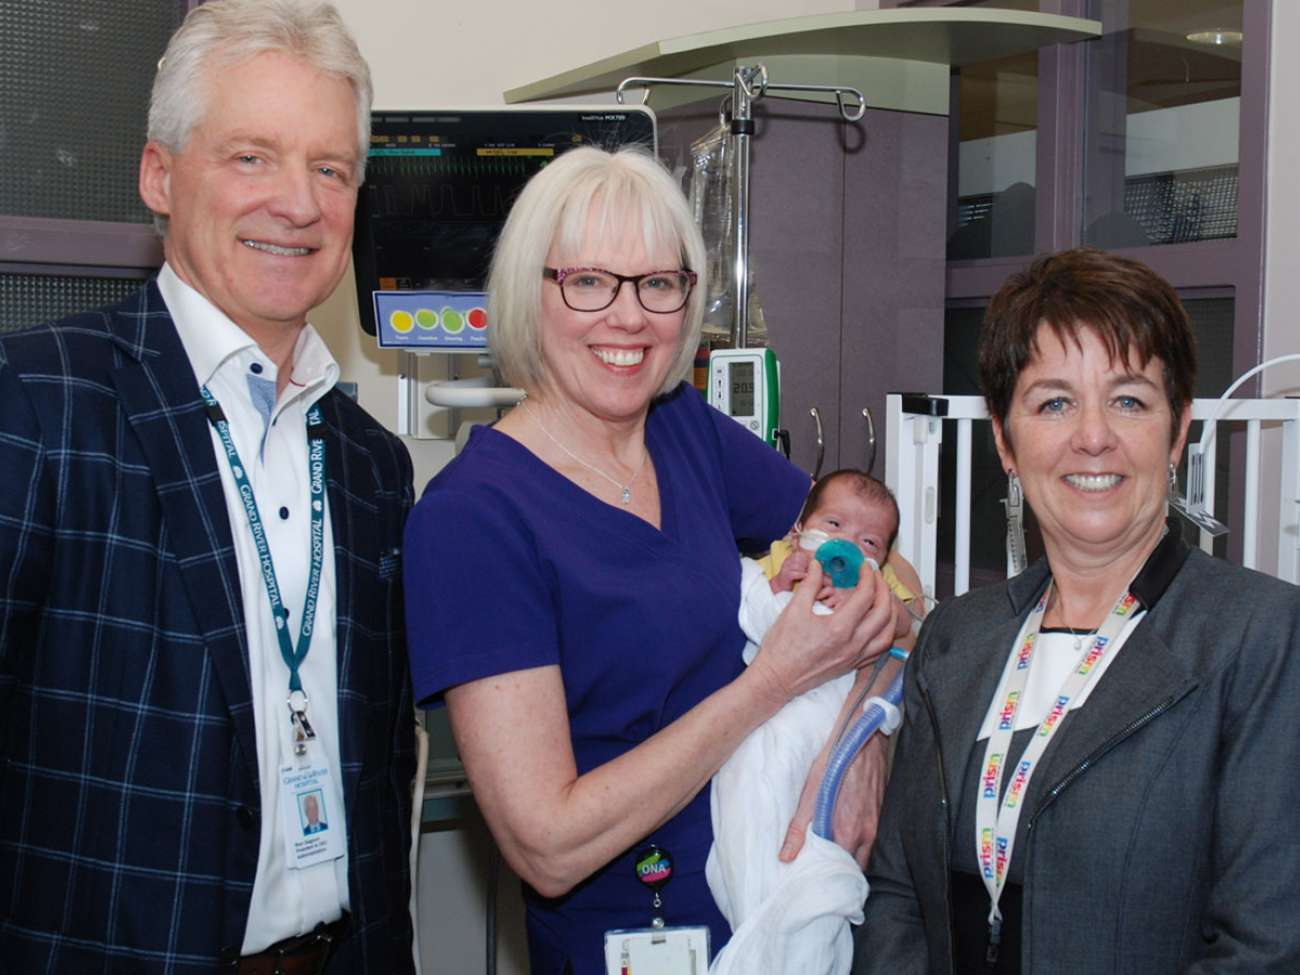 Brenda Menard stands with GRH CEO Ron Gagnon, VP Judy Linton and a young patient in the NICU